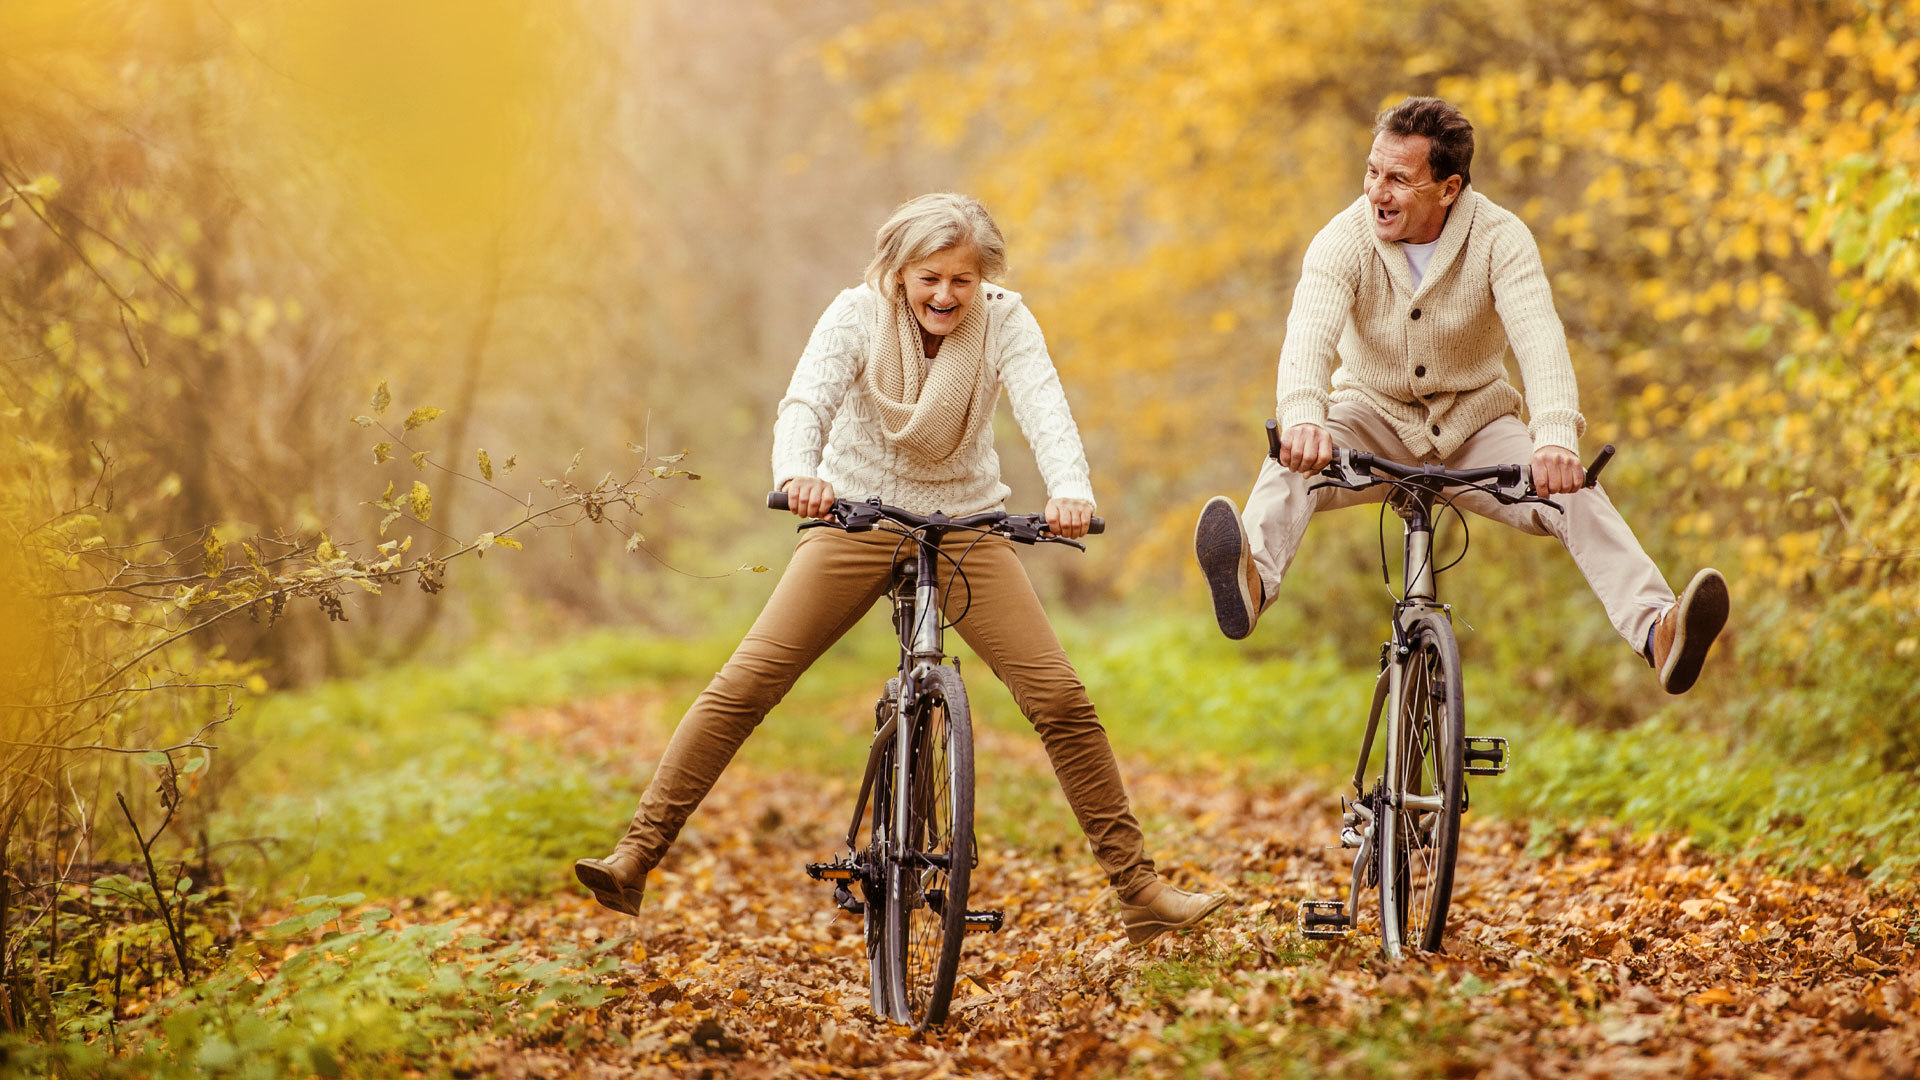 An older man and woman riding bikes through fall foliage with their feet raised playfully off the pedals.